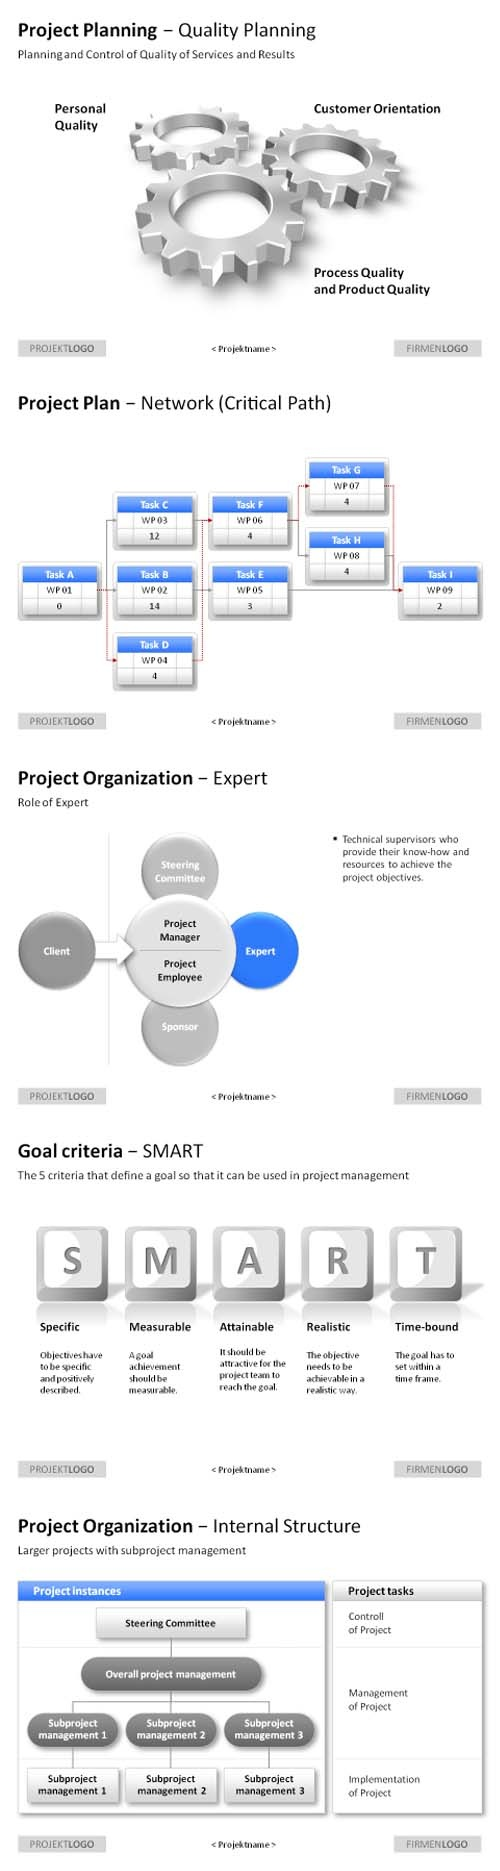 American Academy of Project Management Project